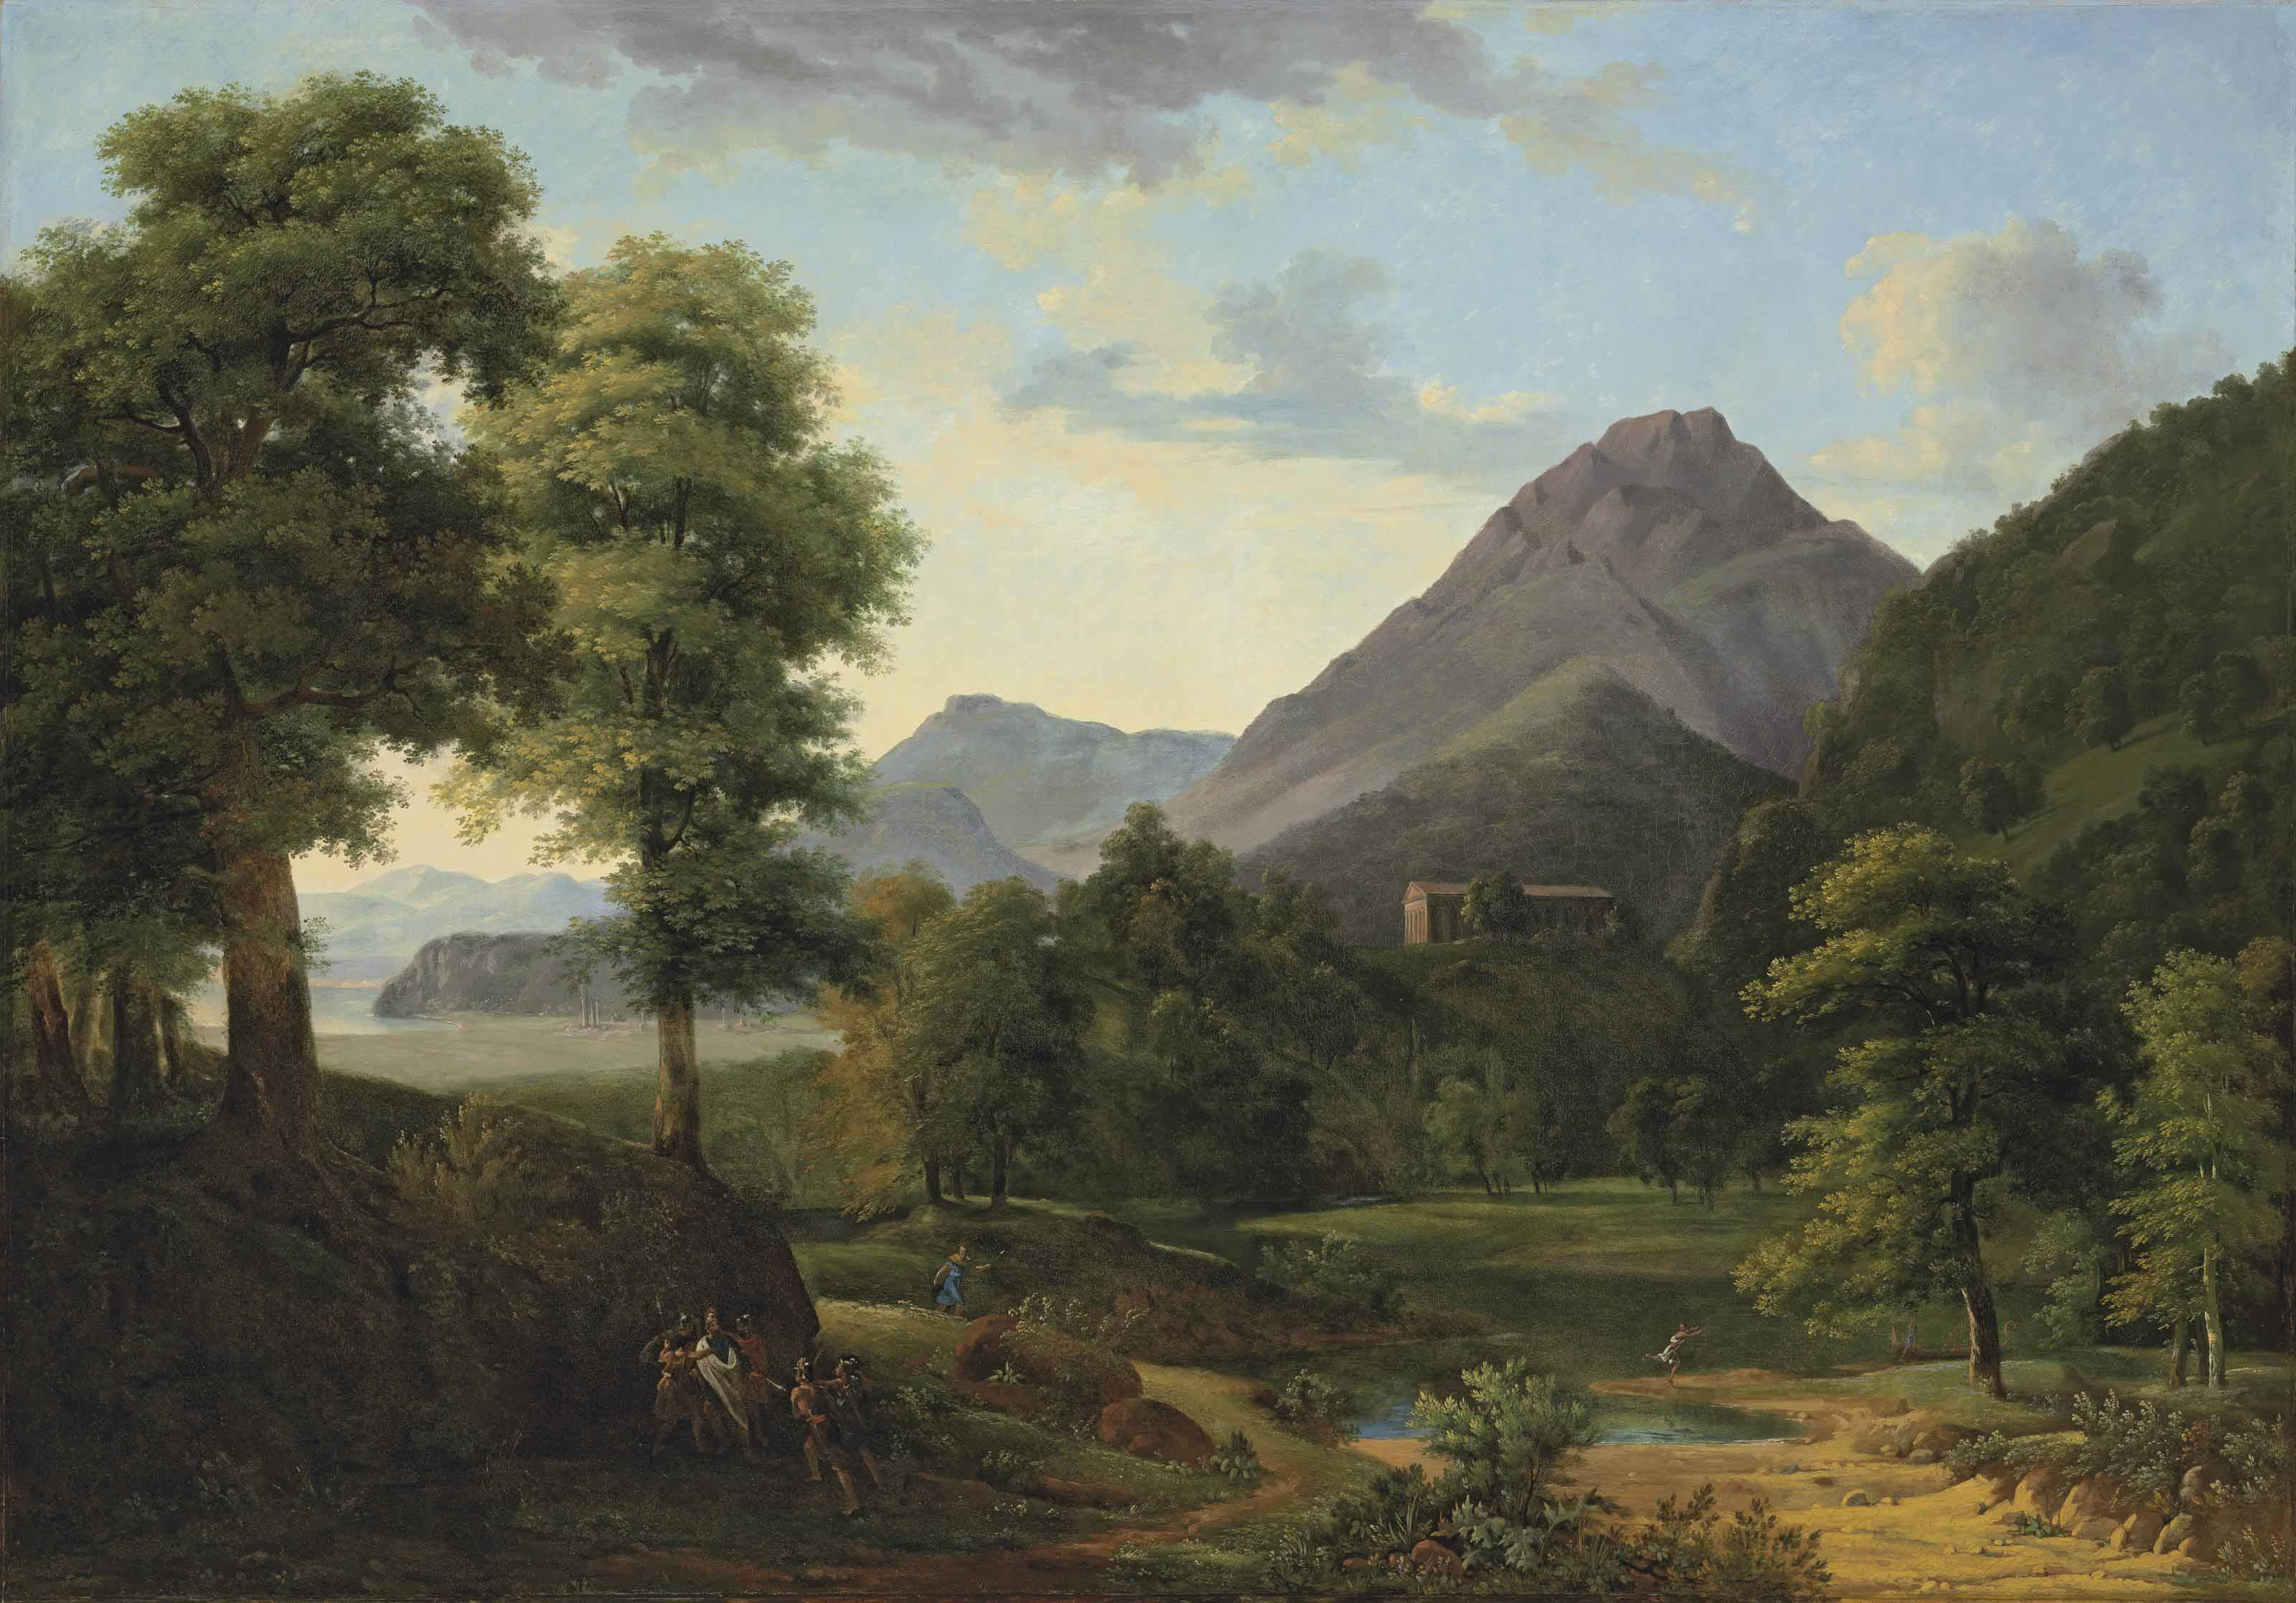 A wooded, mountainous landscape with soldiers capturing a centurion and a figure escaping by a river